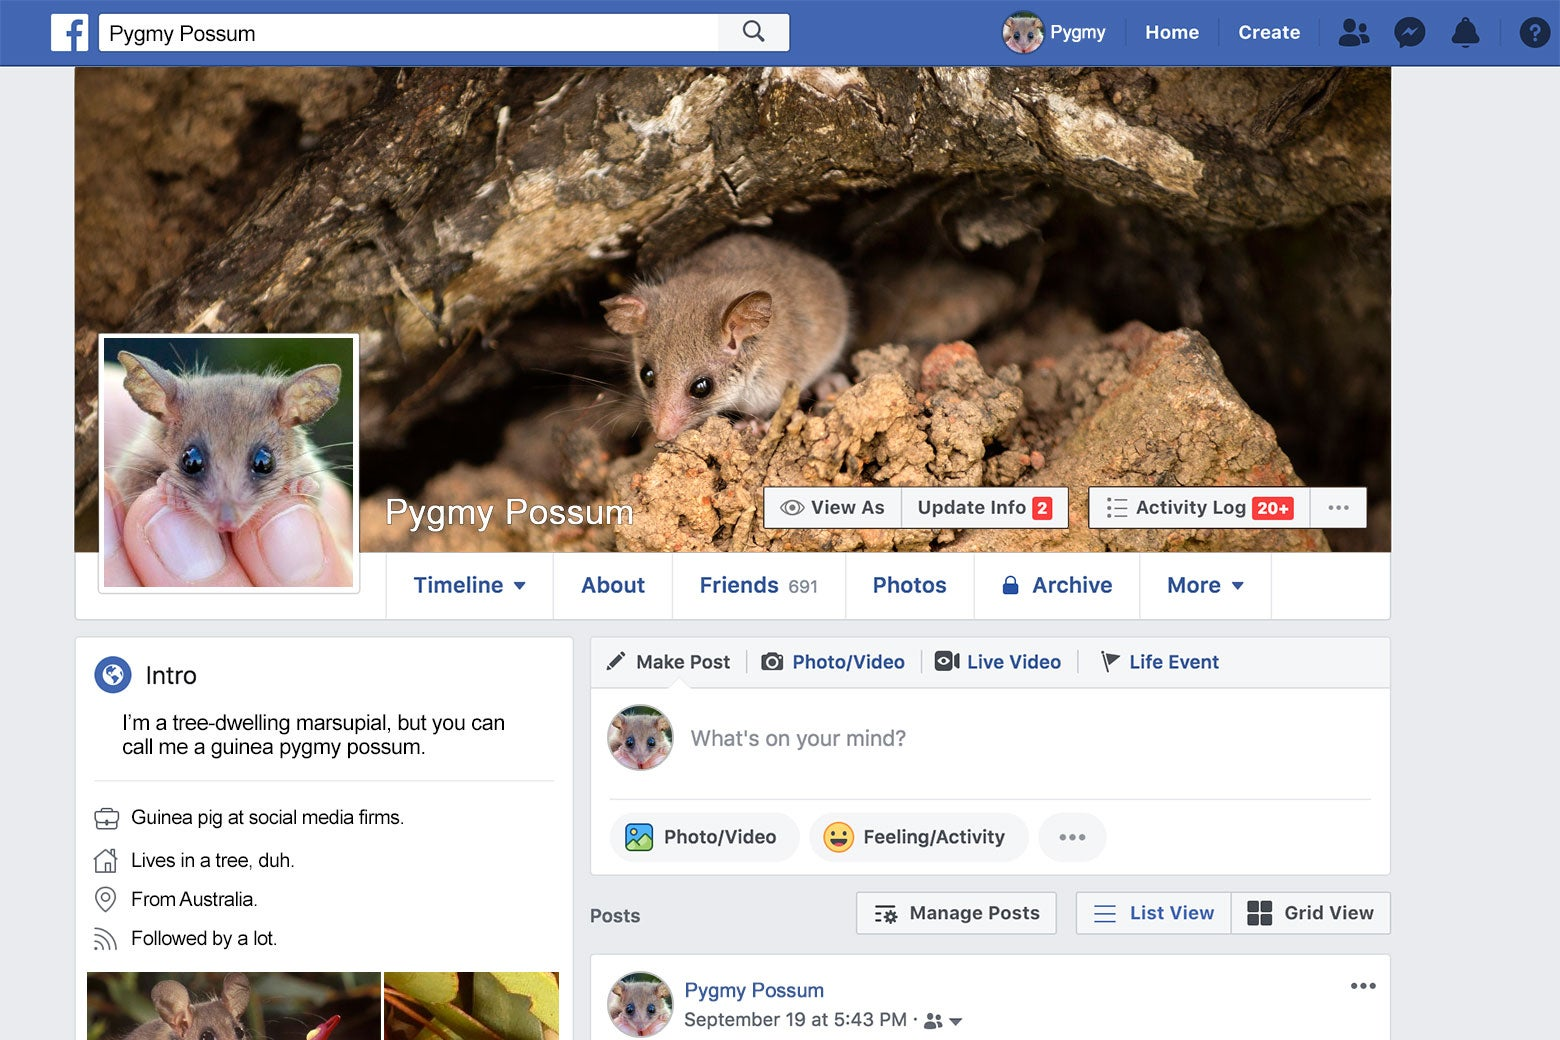 Facebook page of a pygmy possum.